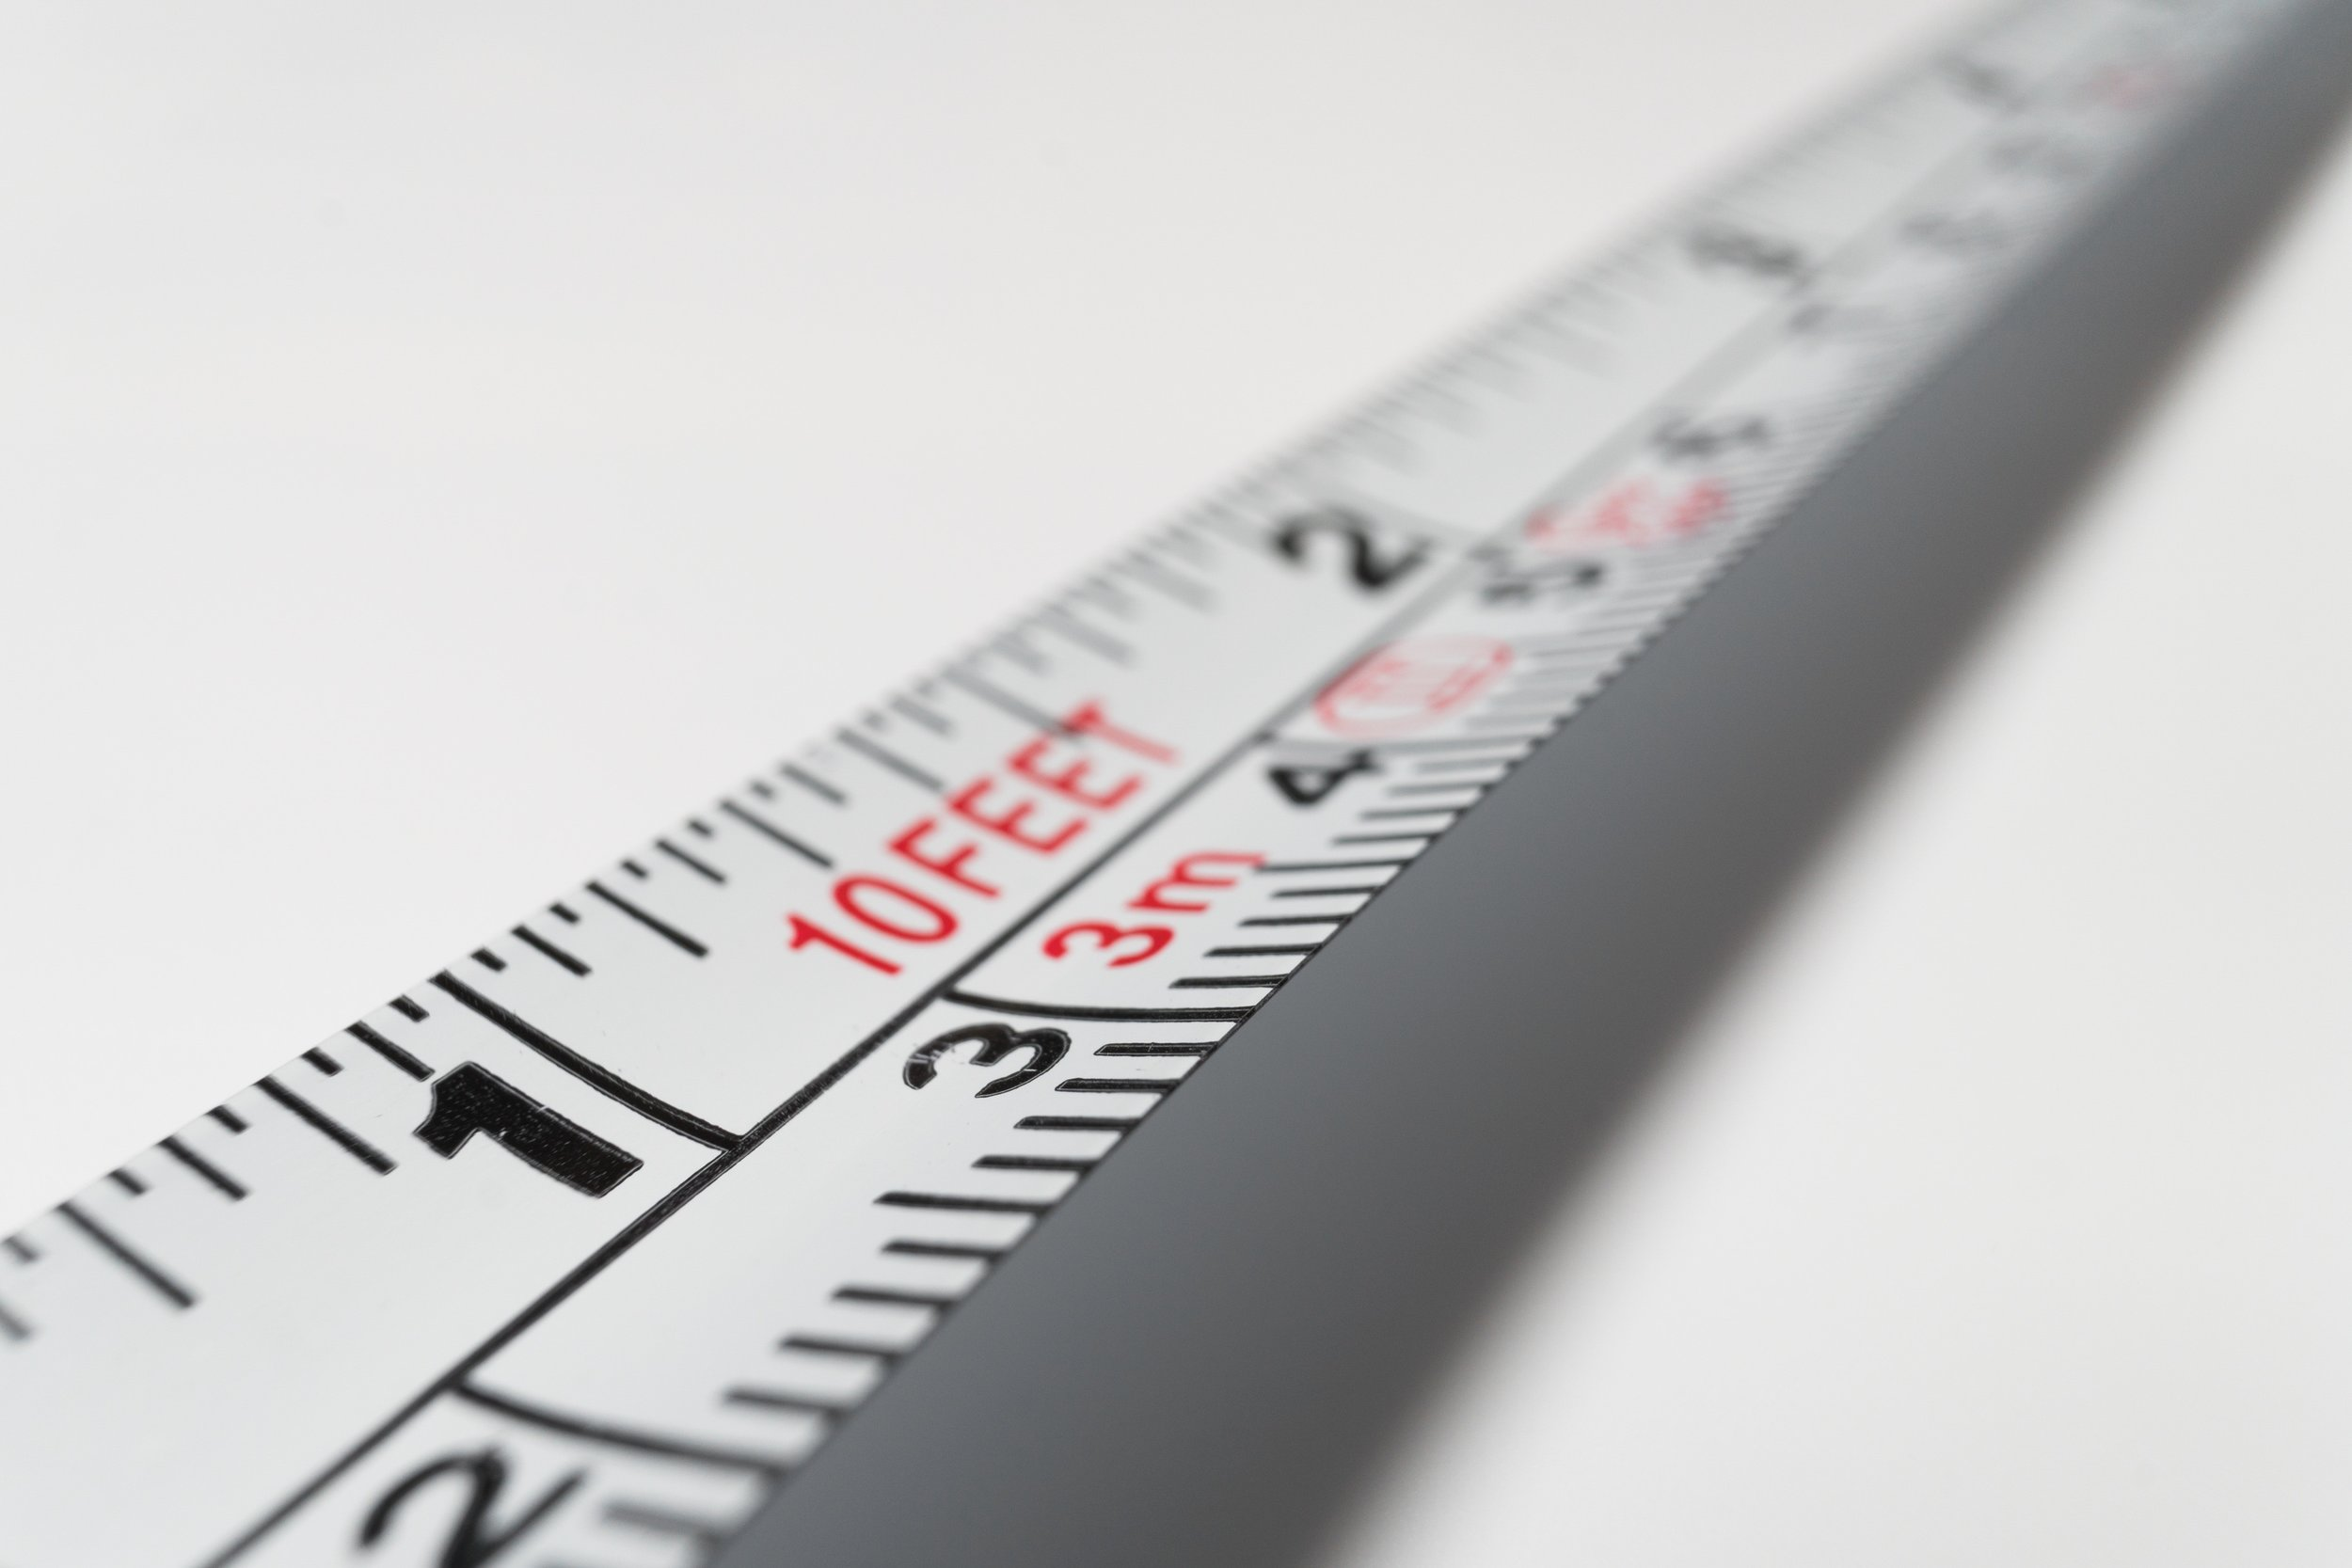 make sure you can measure your goal